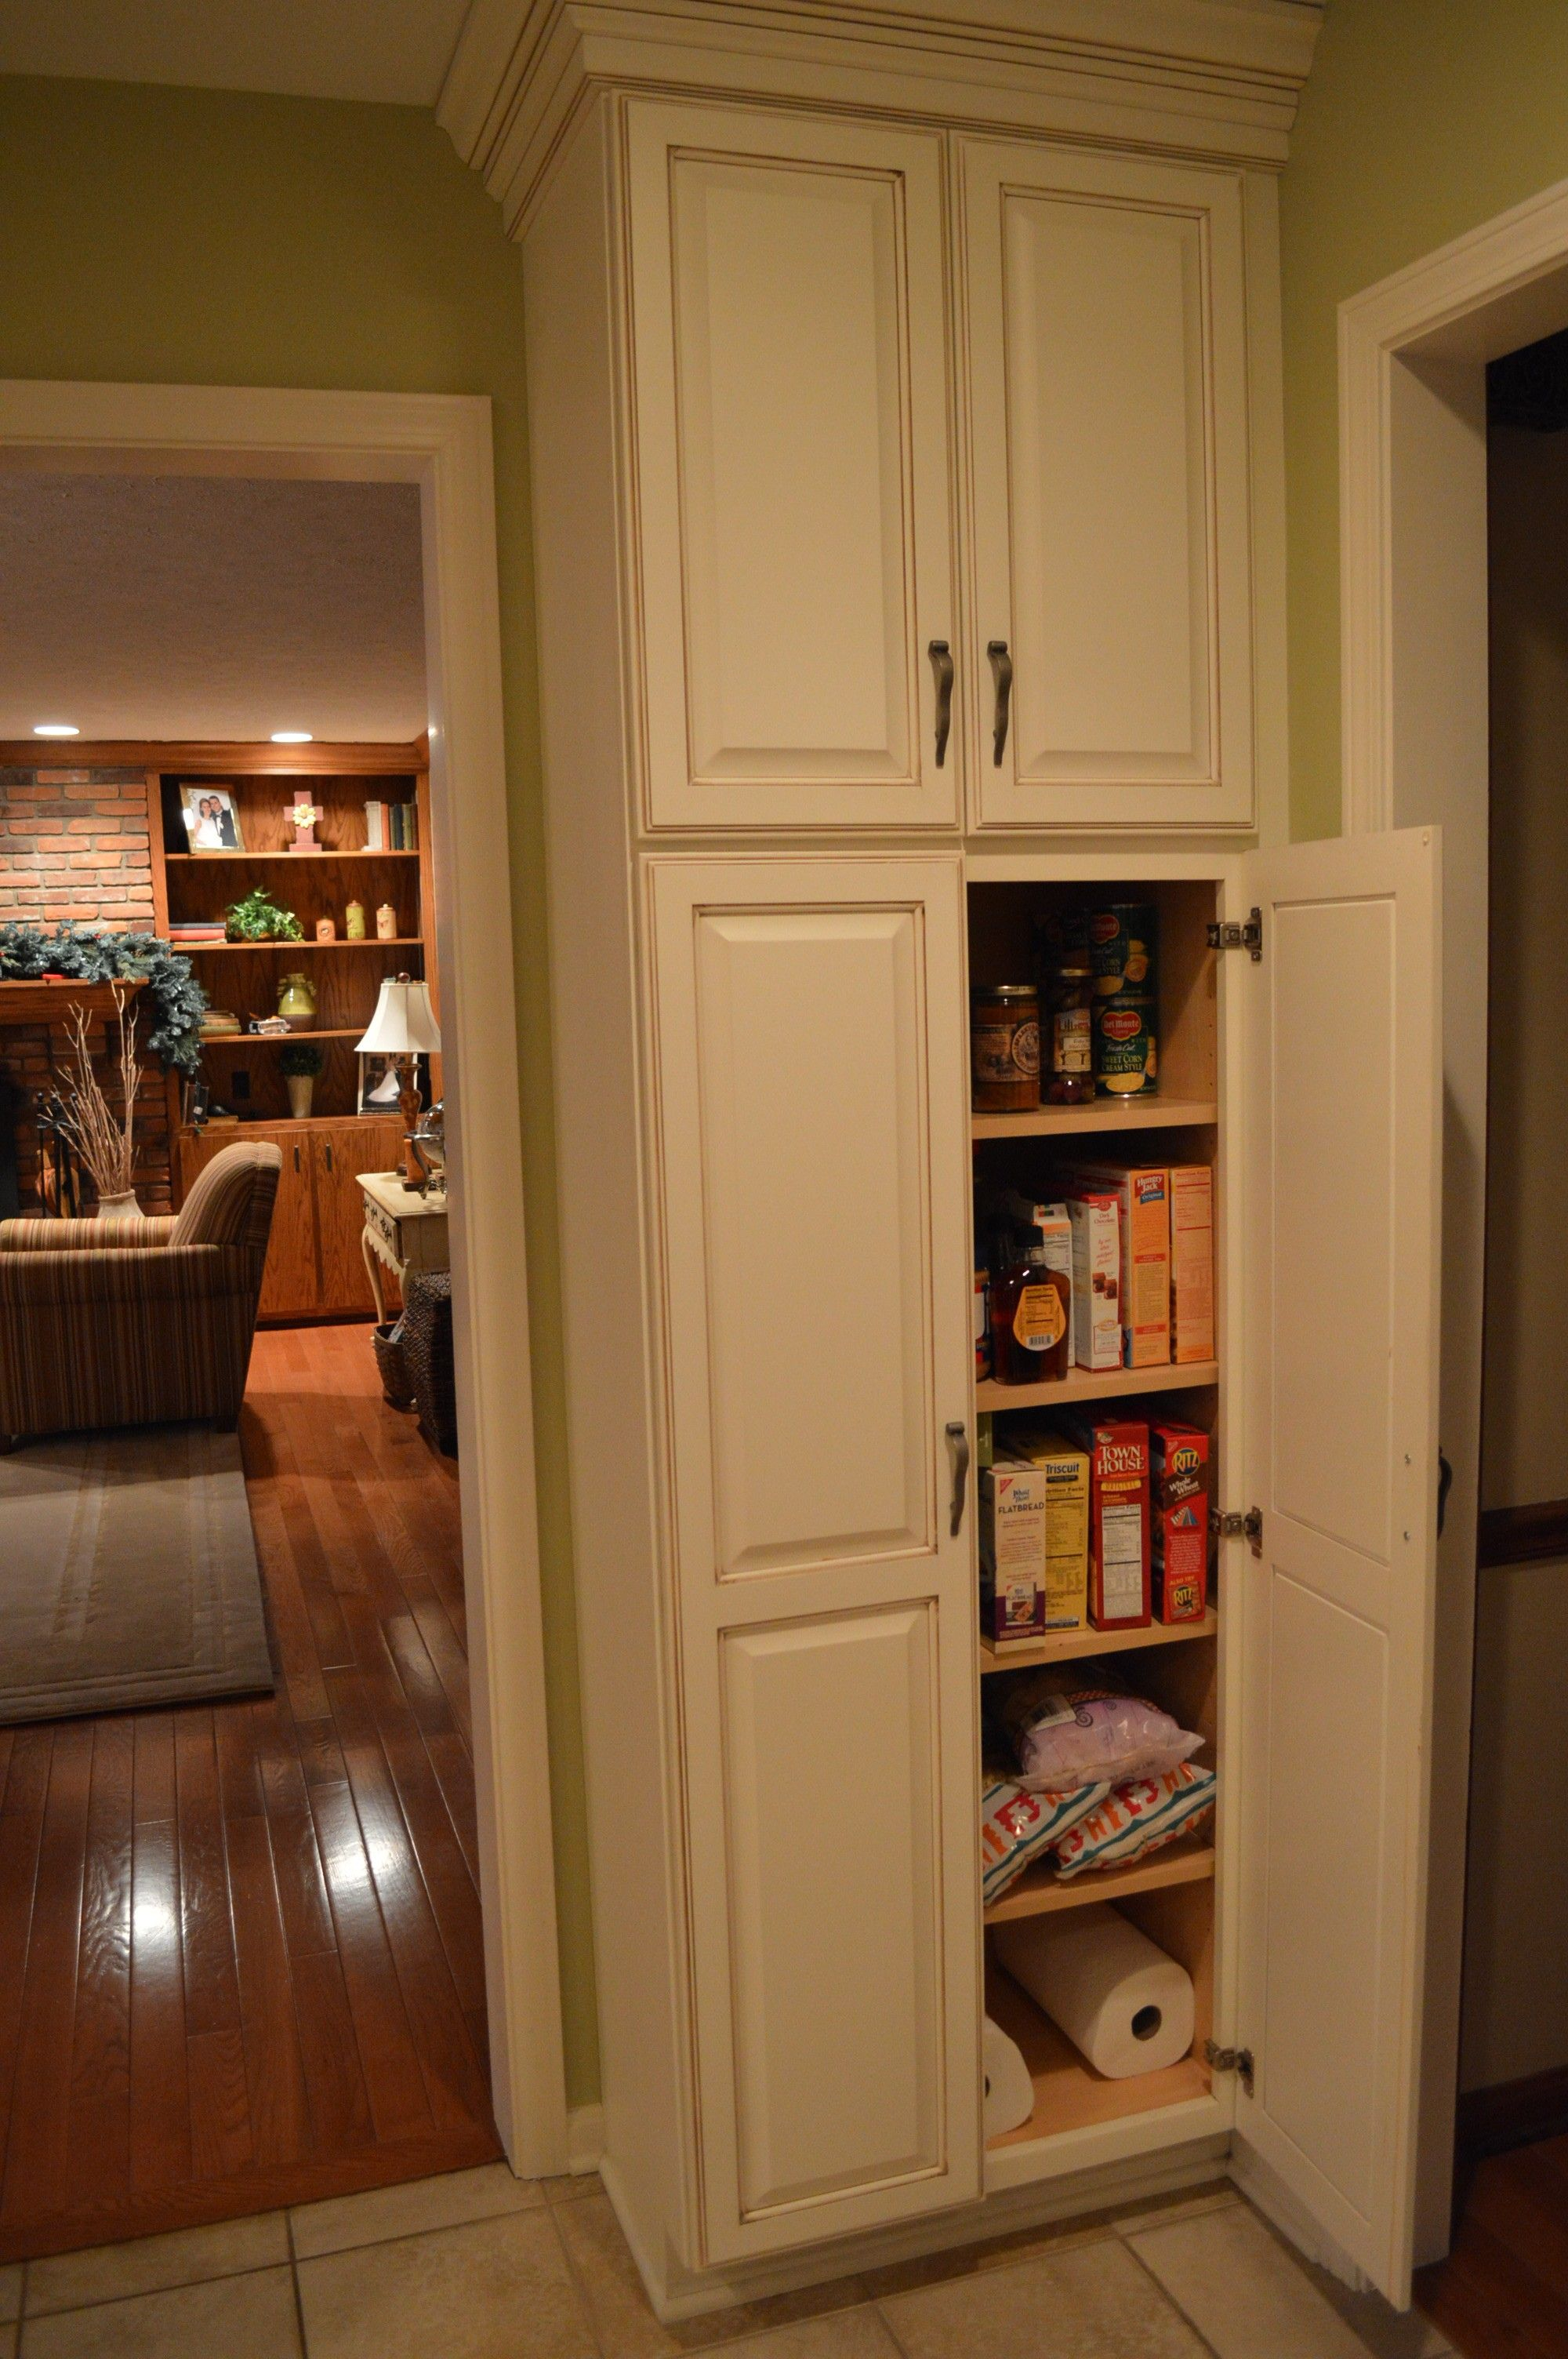 F White Wooden Tall Narrow Pantry Cabinet With Maple Wood Shelves And Door Panel